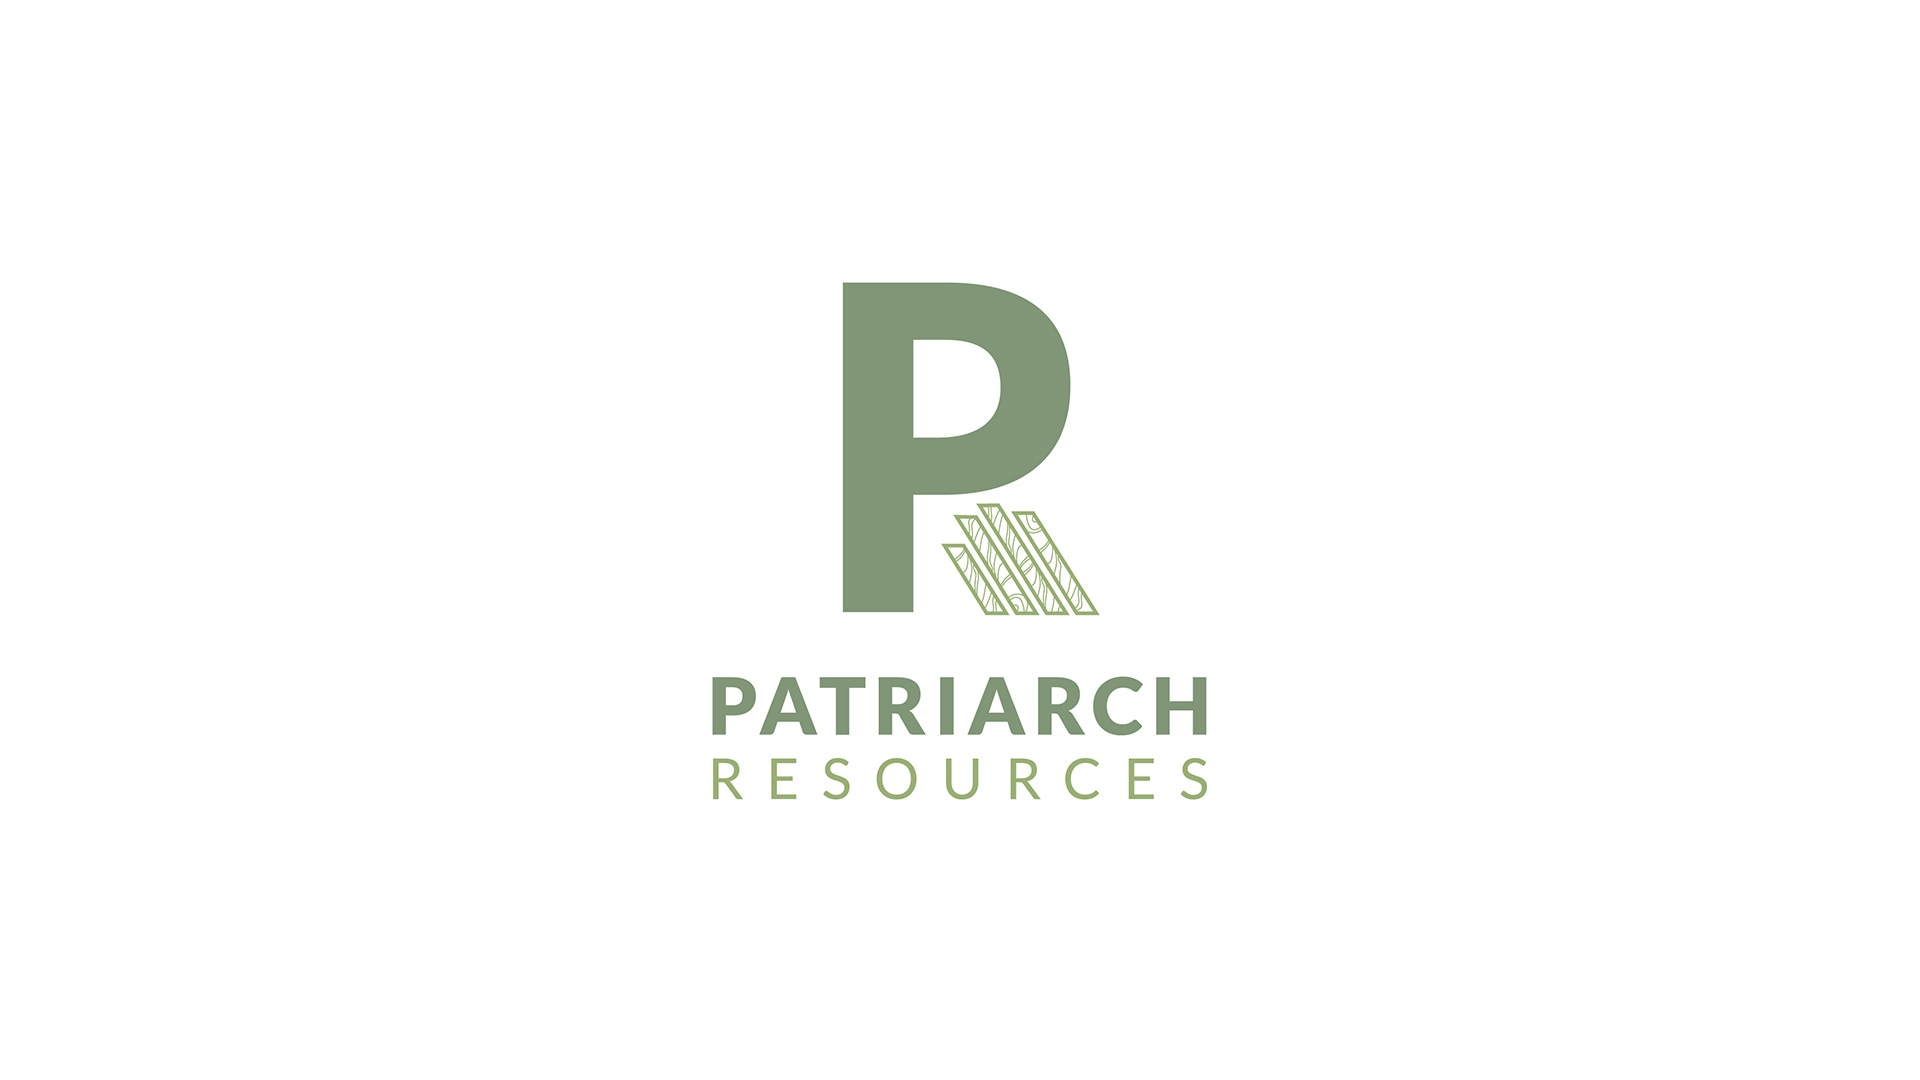 The final result of the Patriarch Logo